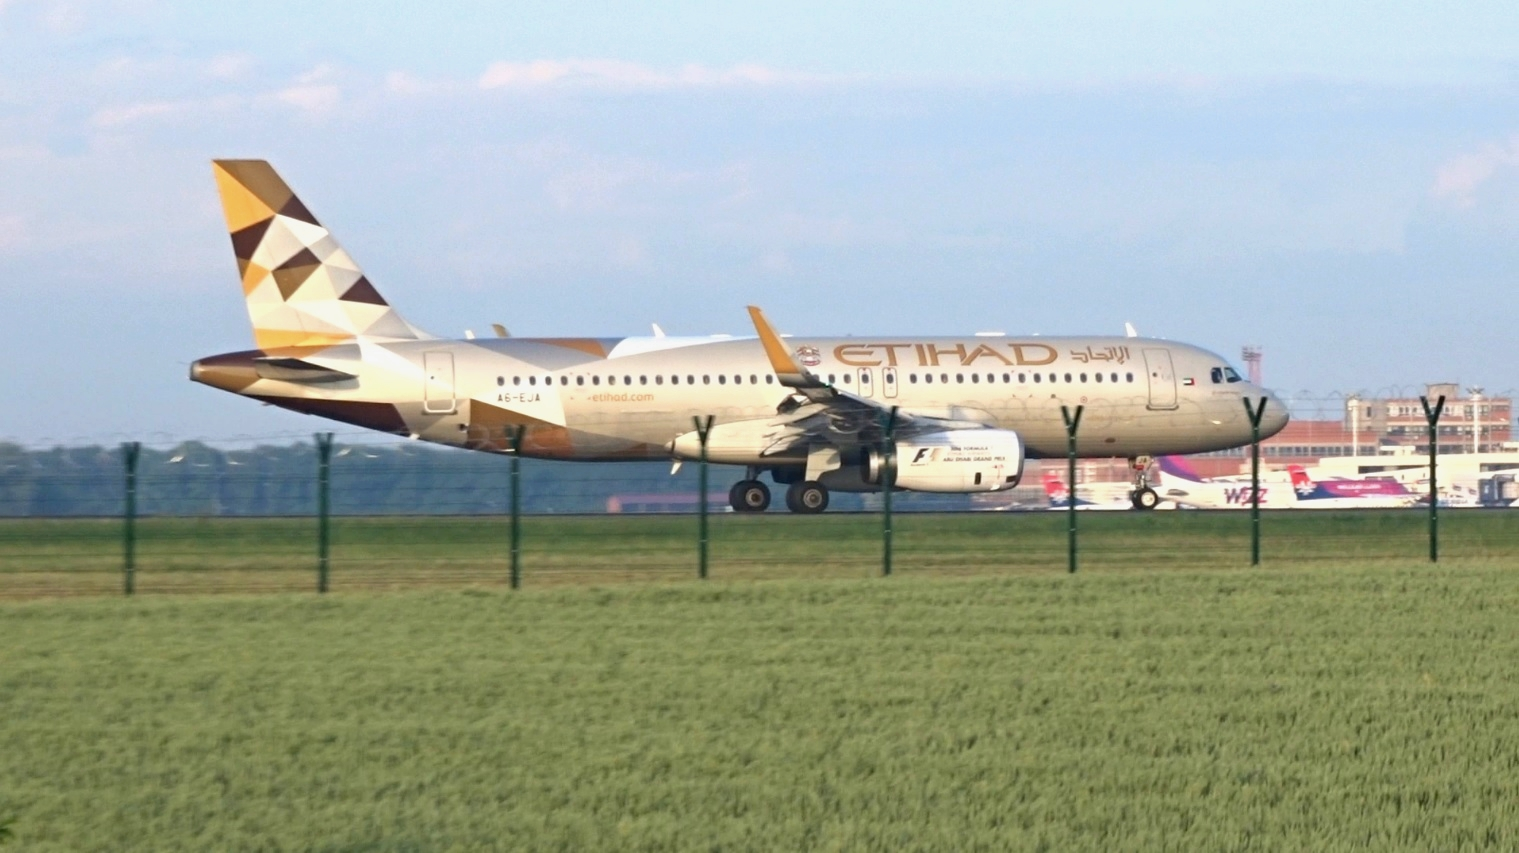 ETIHAD Airways Airbus A319 at Belgrade airport